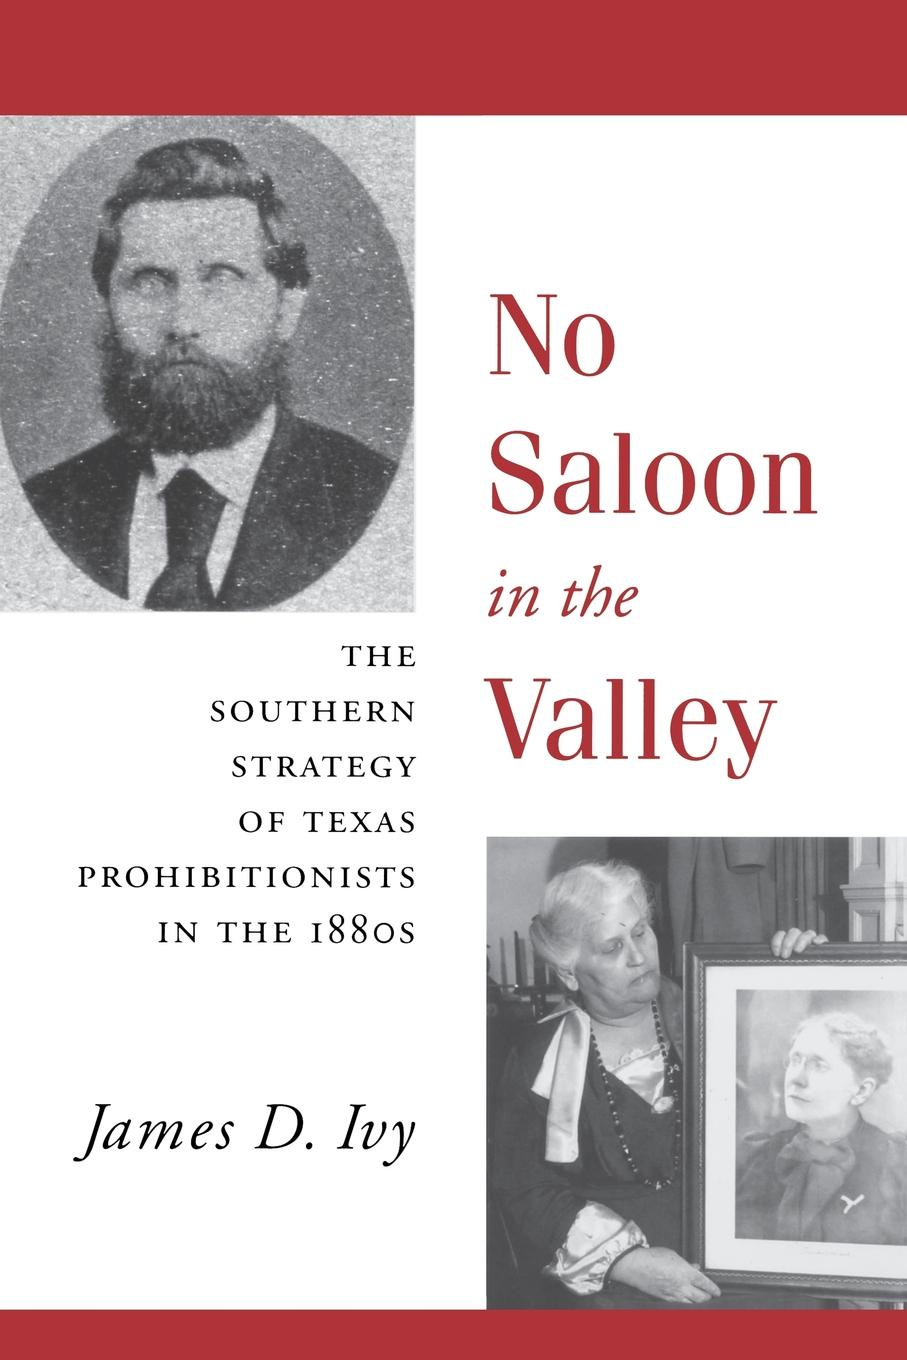 No Saloon in the Valley. The Southern Strategy of Texas Prohibitions in the 1800s. James D. Ivy